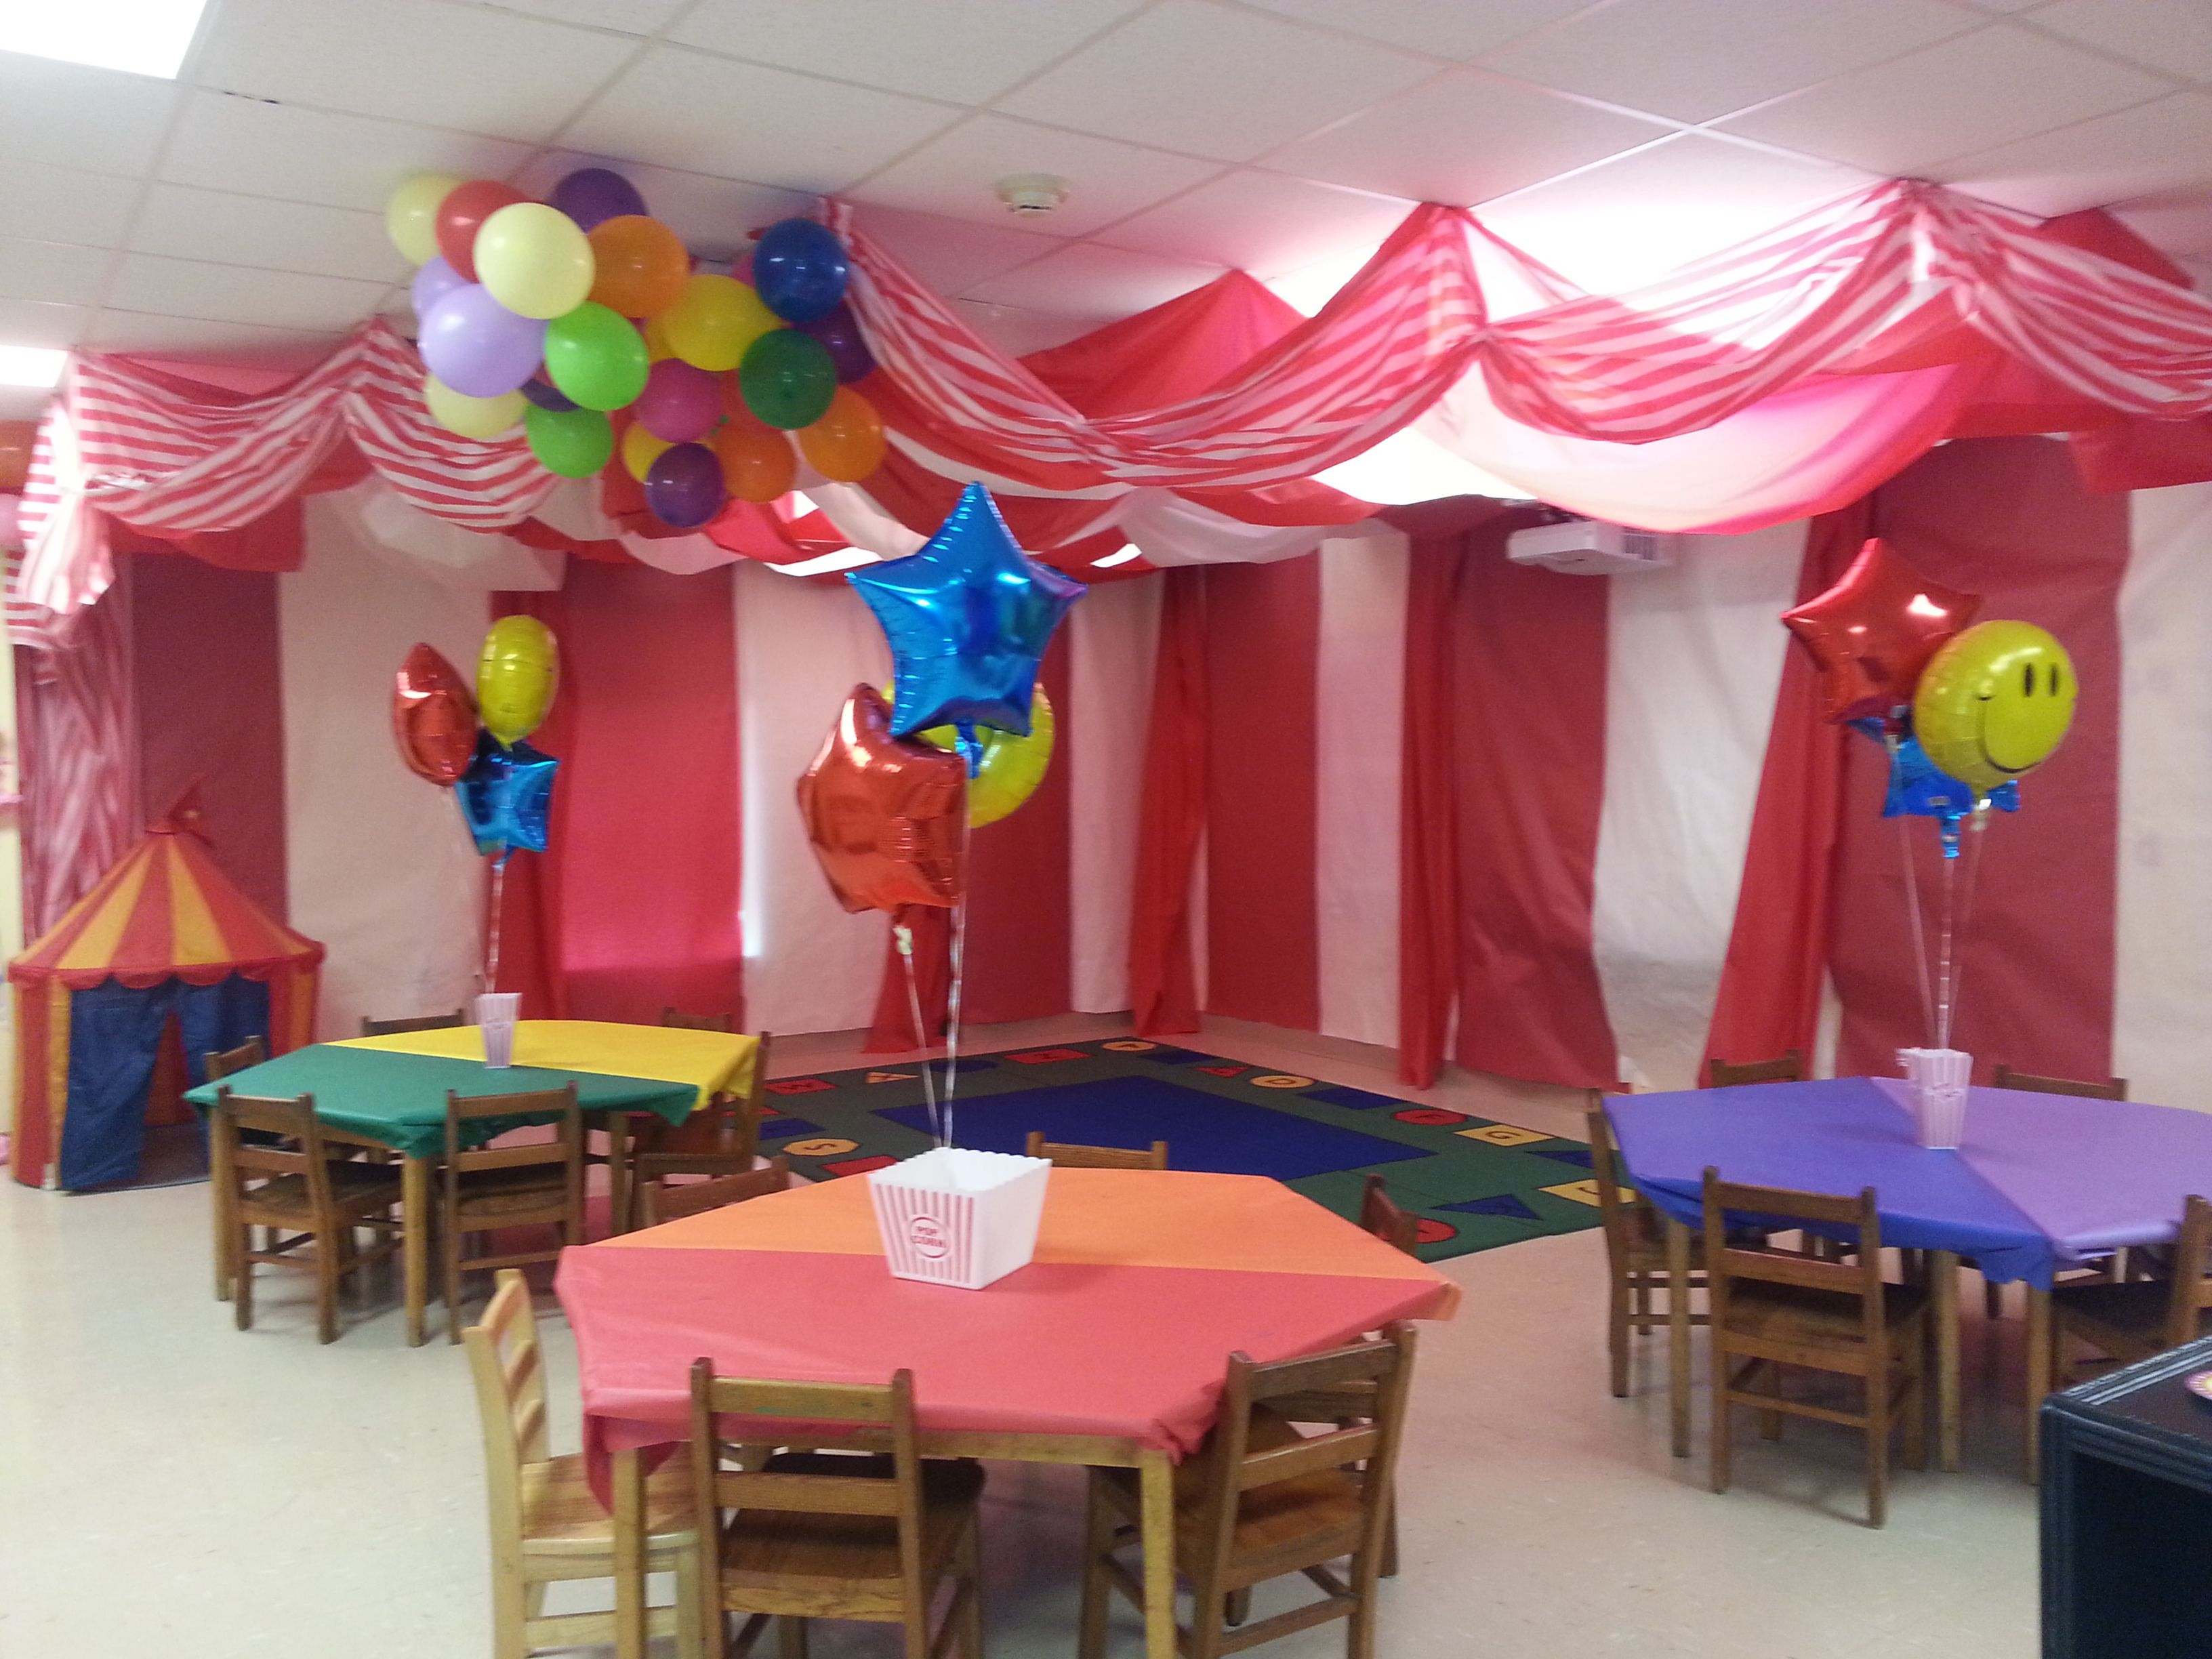 Classroom Ideas For Preschoolers : Preschool classroom pinterest